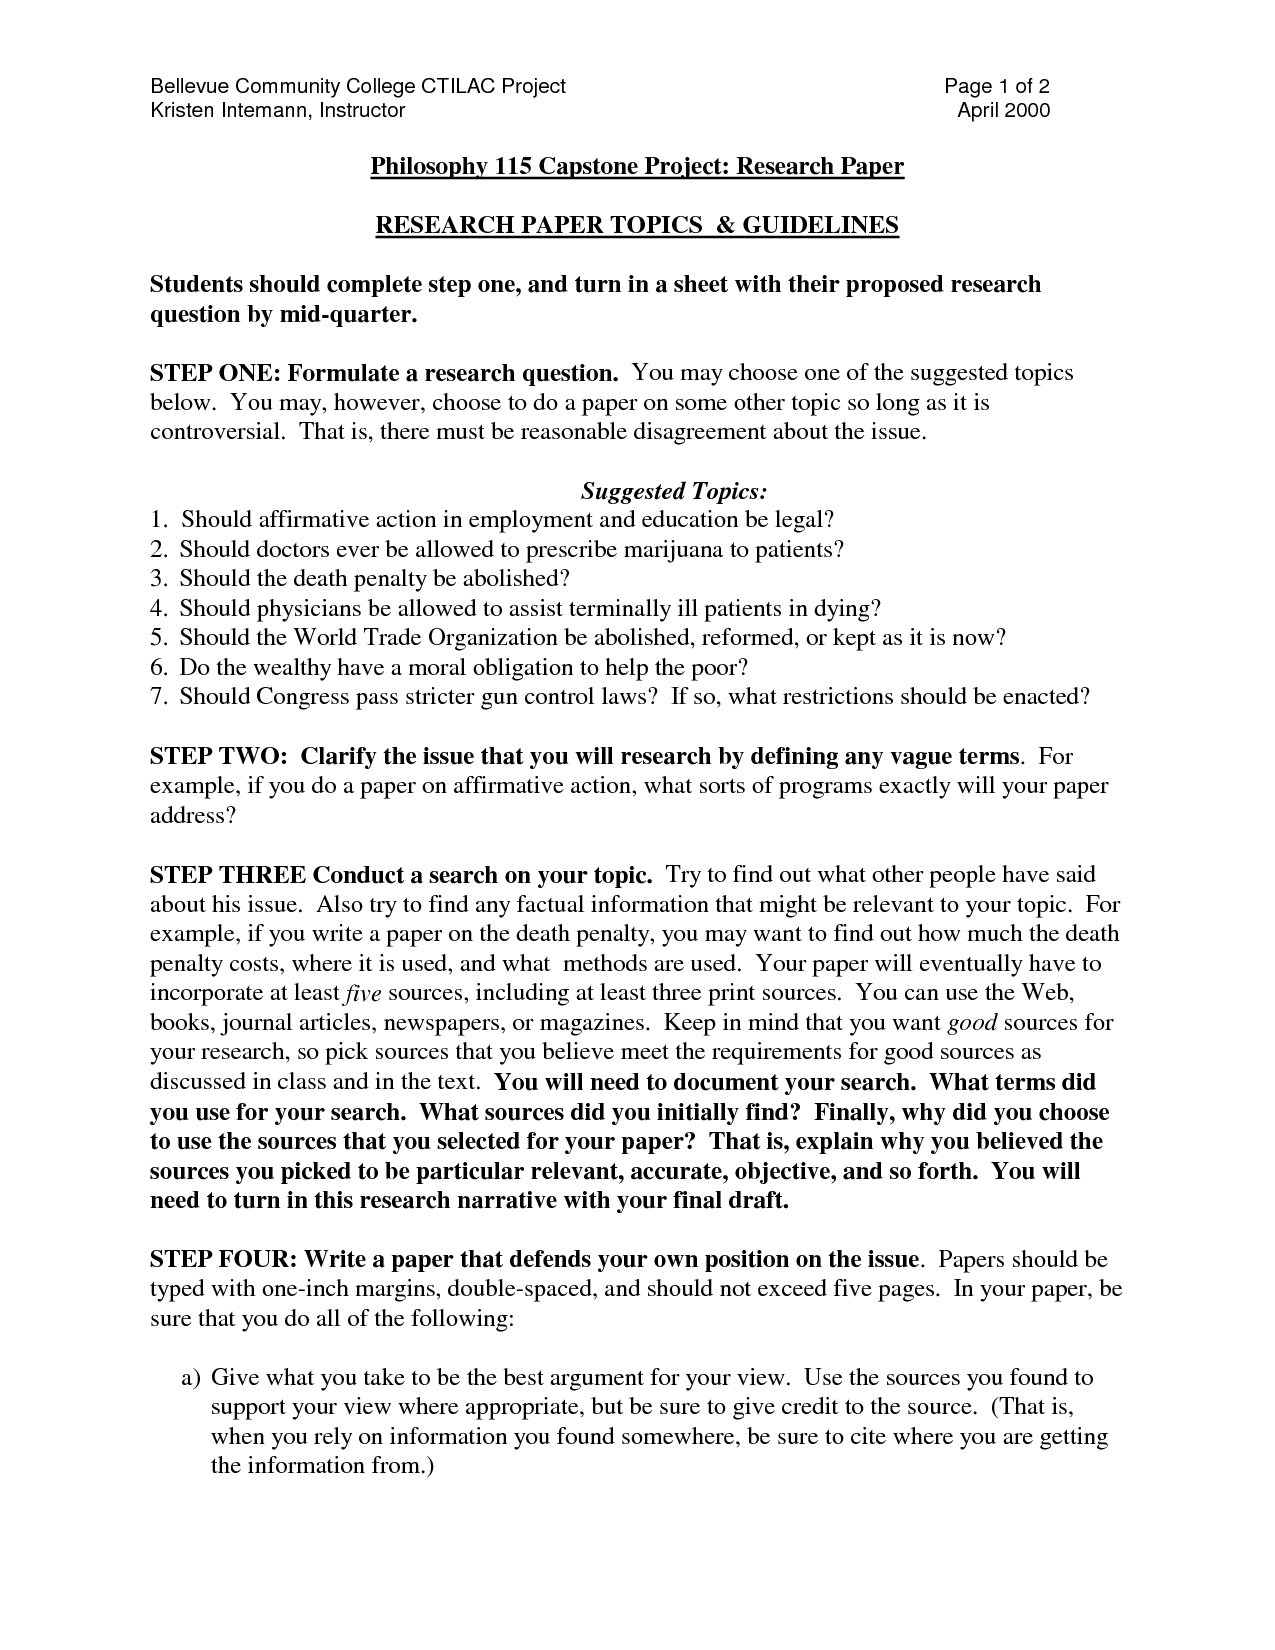 003 Yg32qgw3ao Research Paper For Wondrous College Topics English Class Ideas Sample Students Full